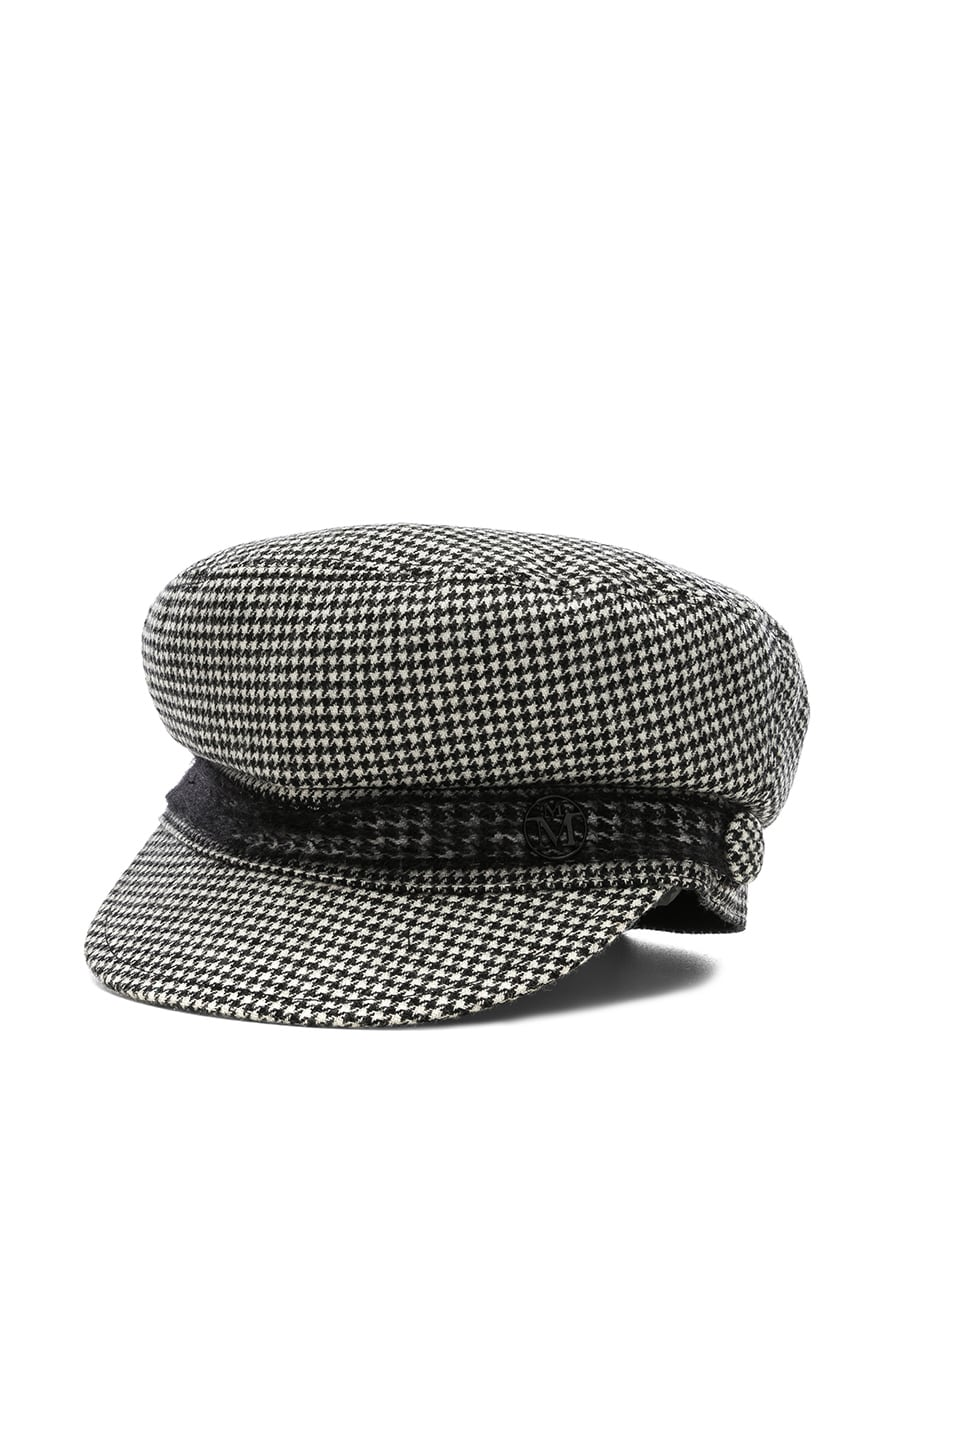 Image 2 of Maison Michel New Abby Wool Cashmere Dogtooth Hat in Black & Cream